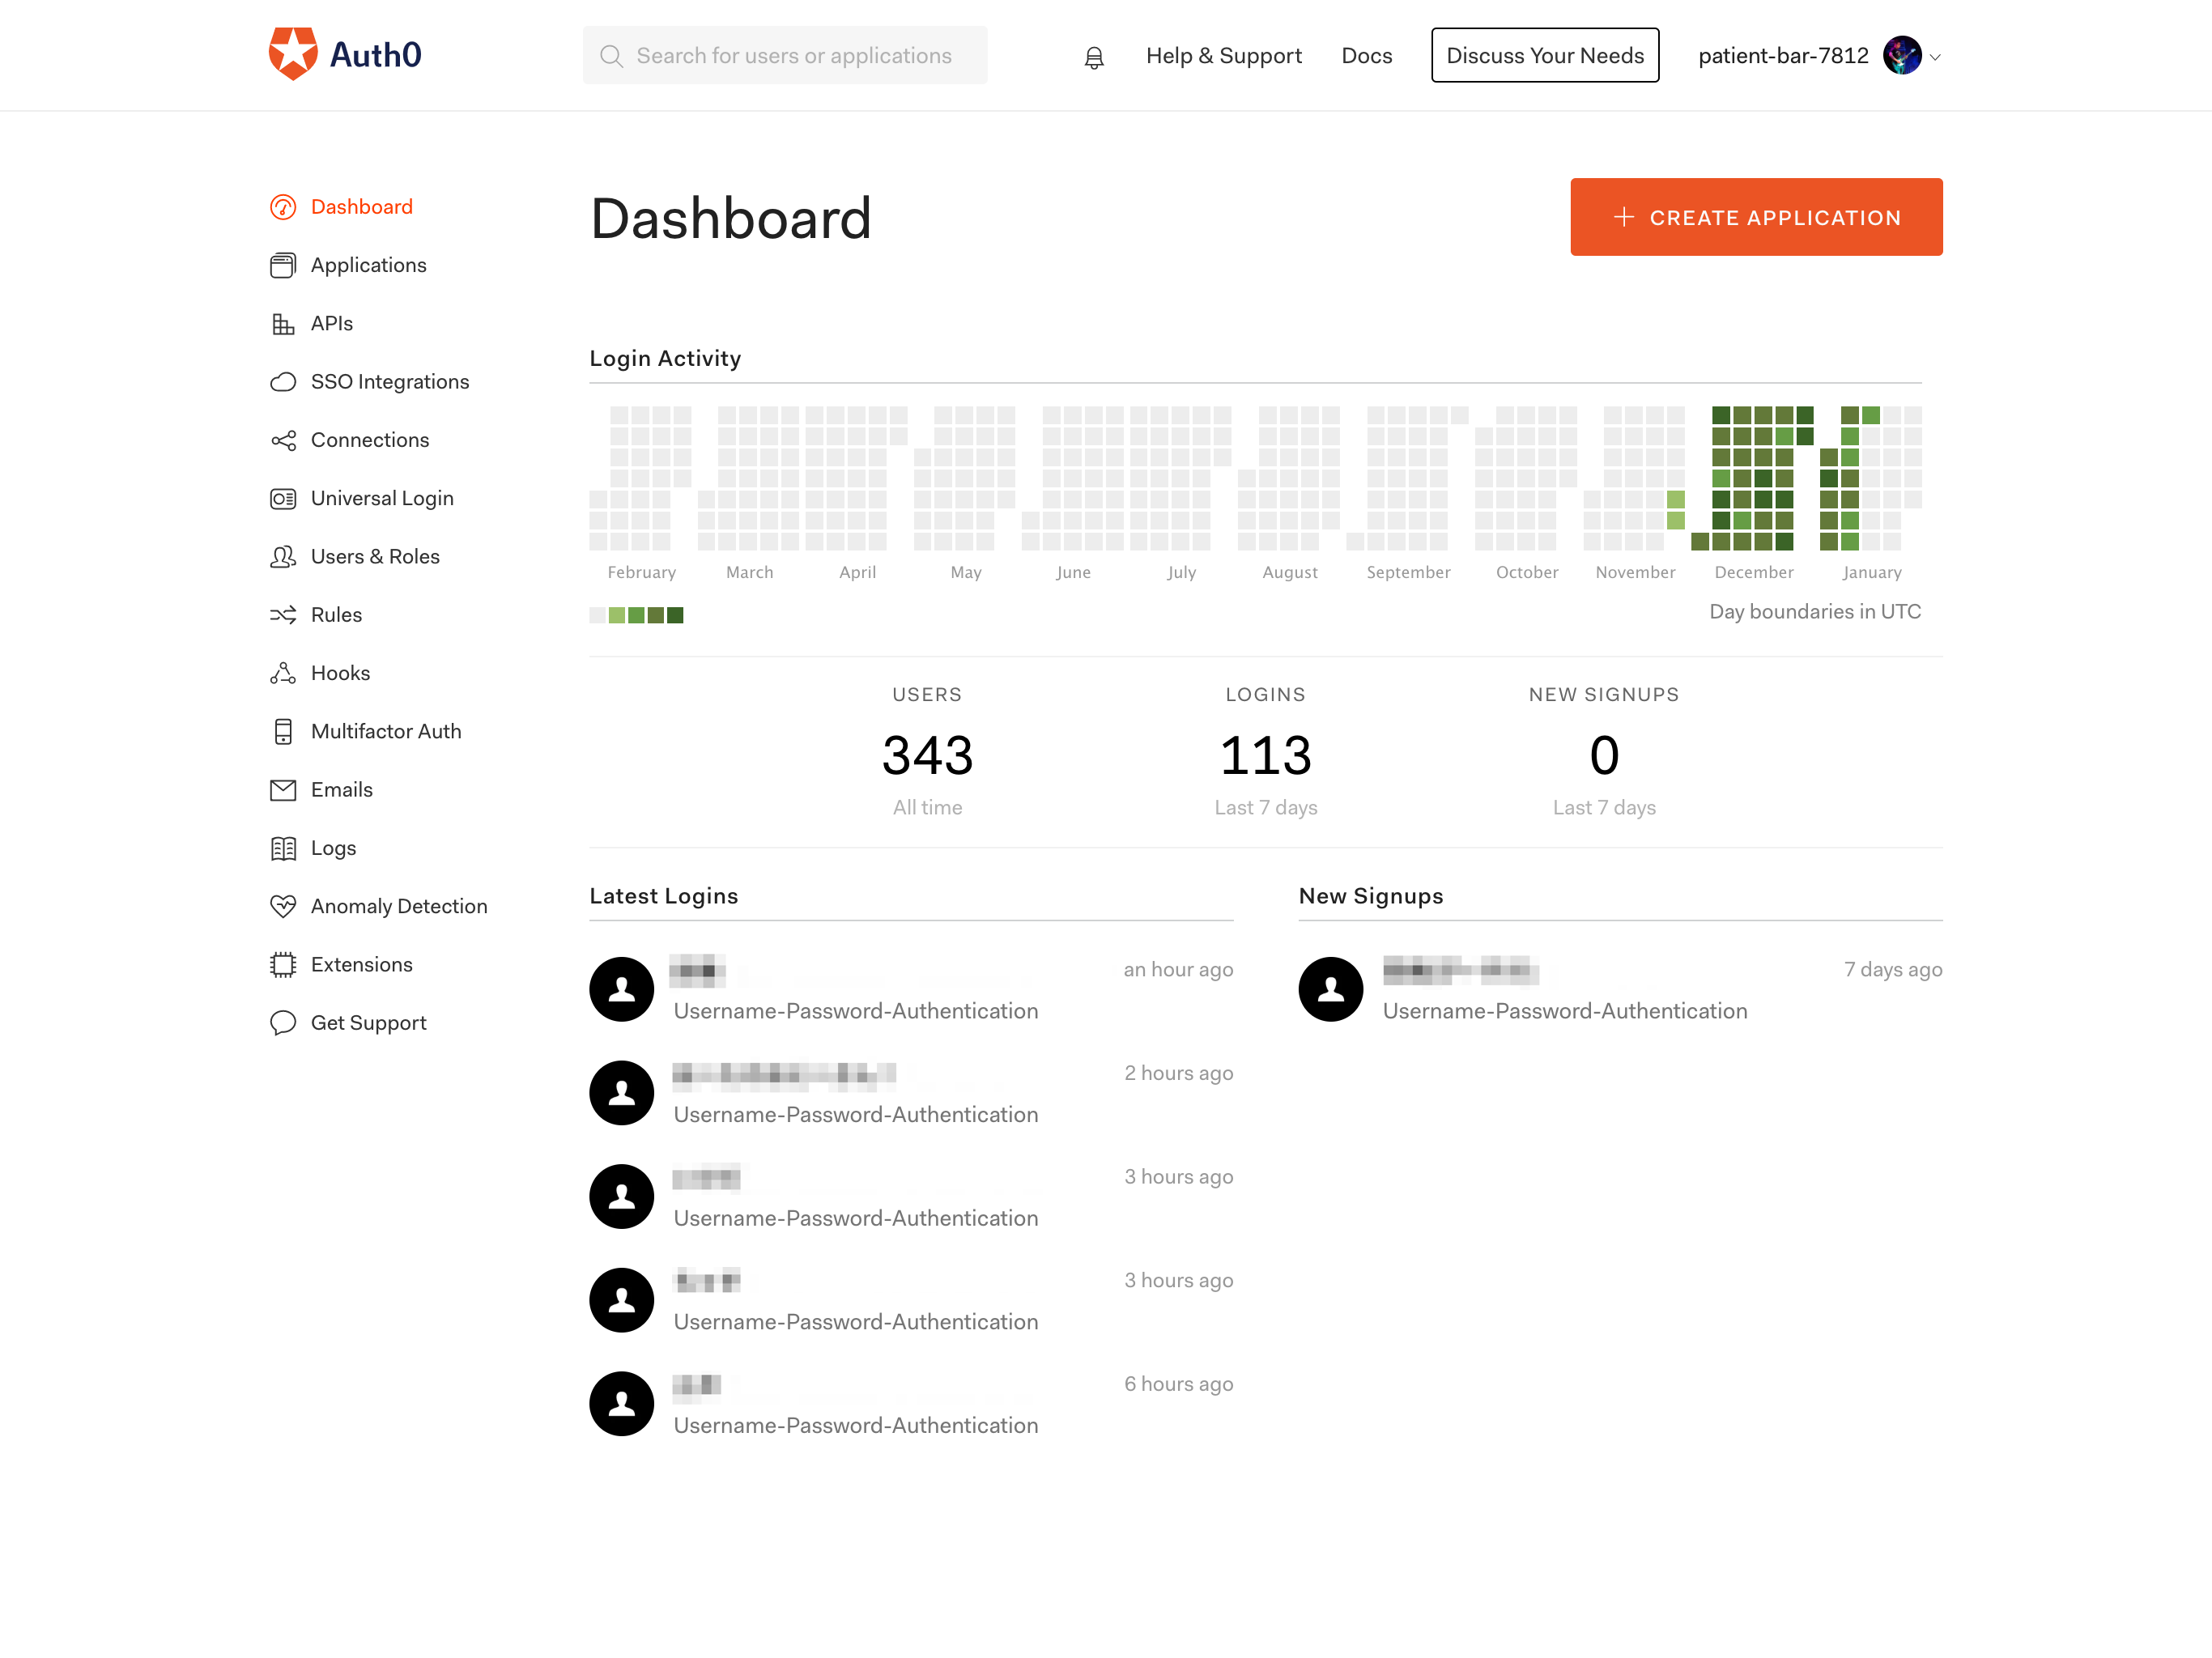 manage_auth0_com_dashboard_us_patient-bar-7812__iPad_Pro_.png